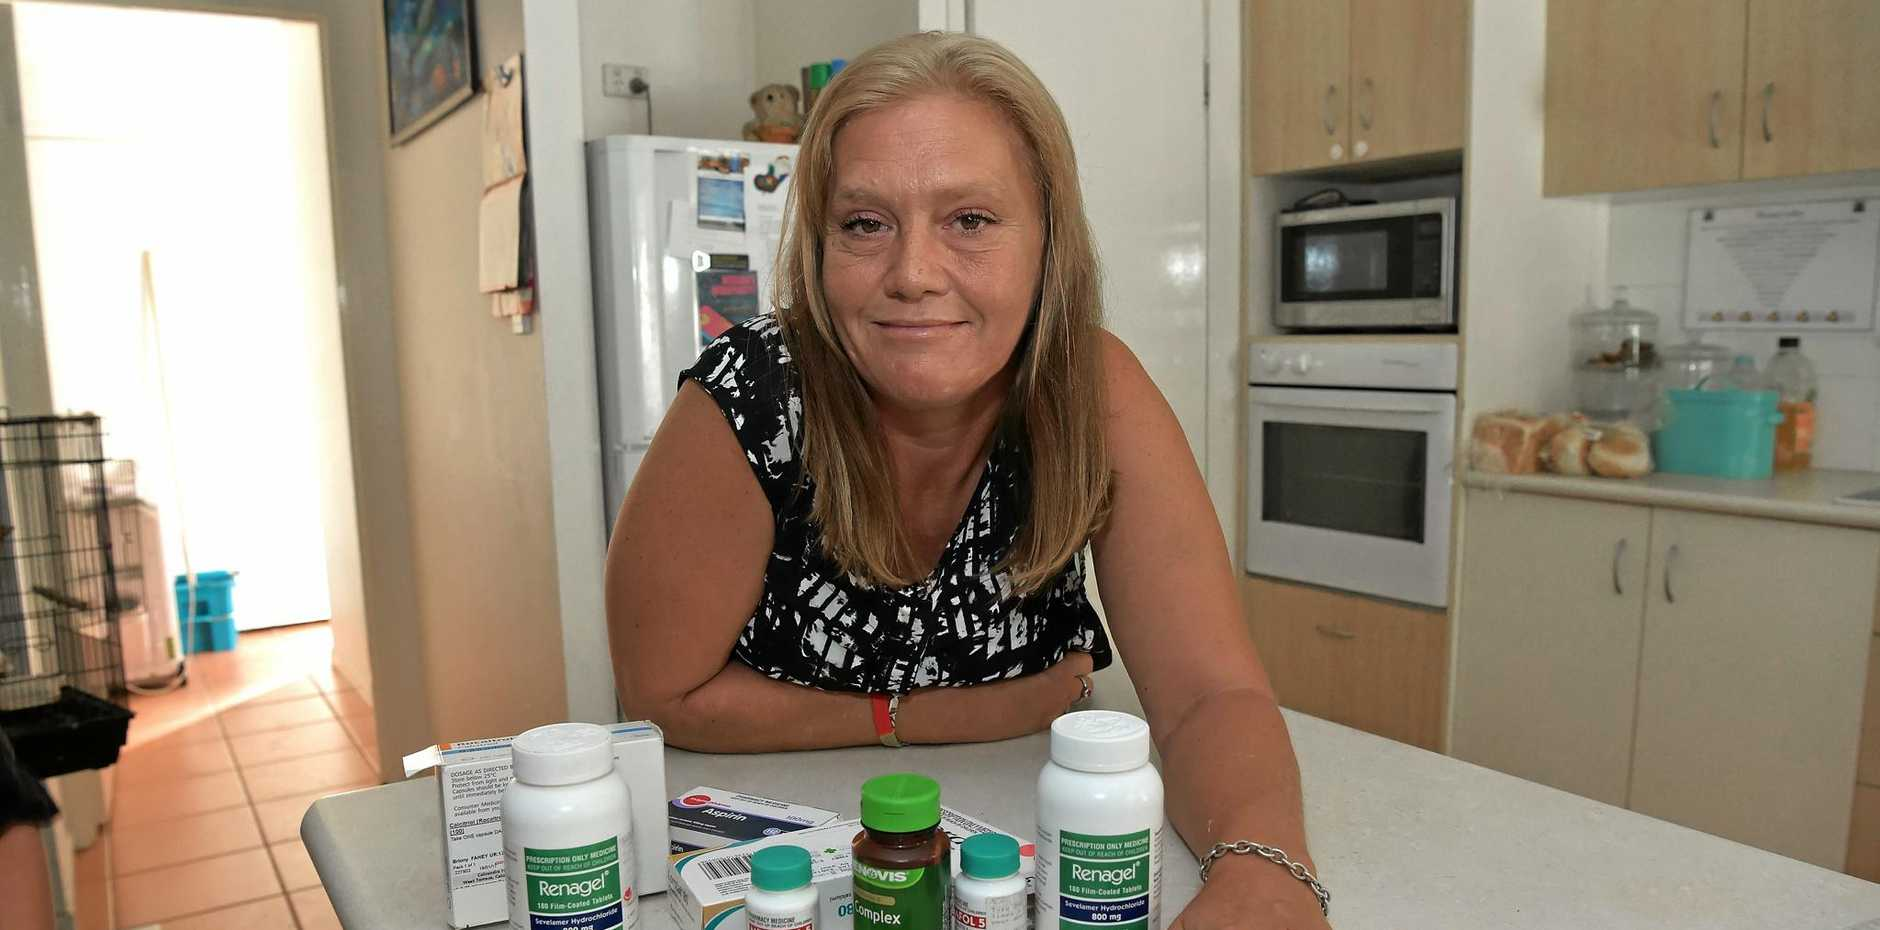 Briony Fahey, pictured with her medication, says the new Sunshine Coast University Hospital will help people with serious renal issues and diabetes.